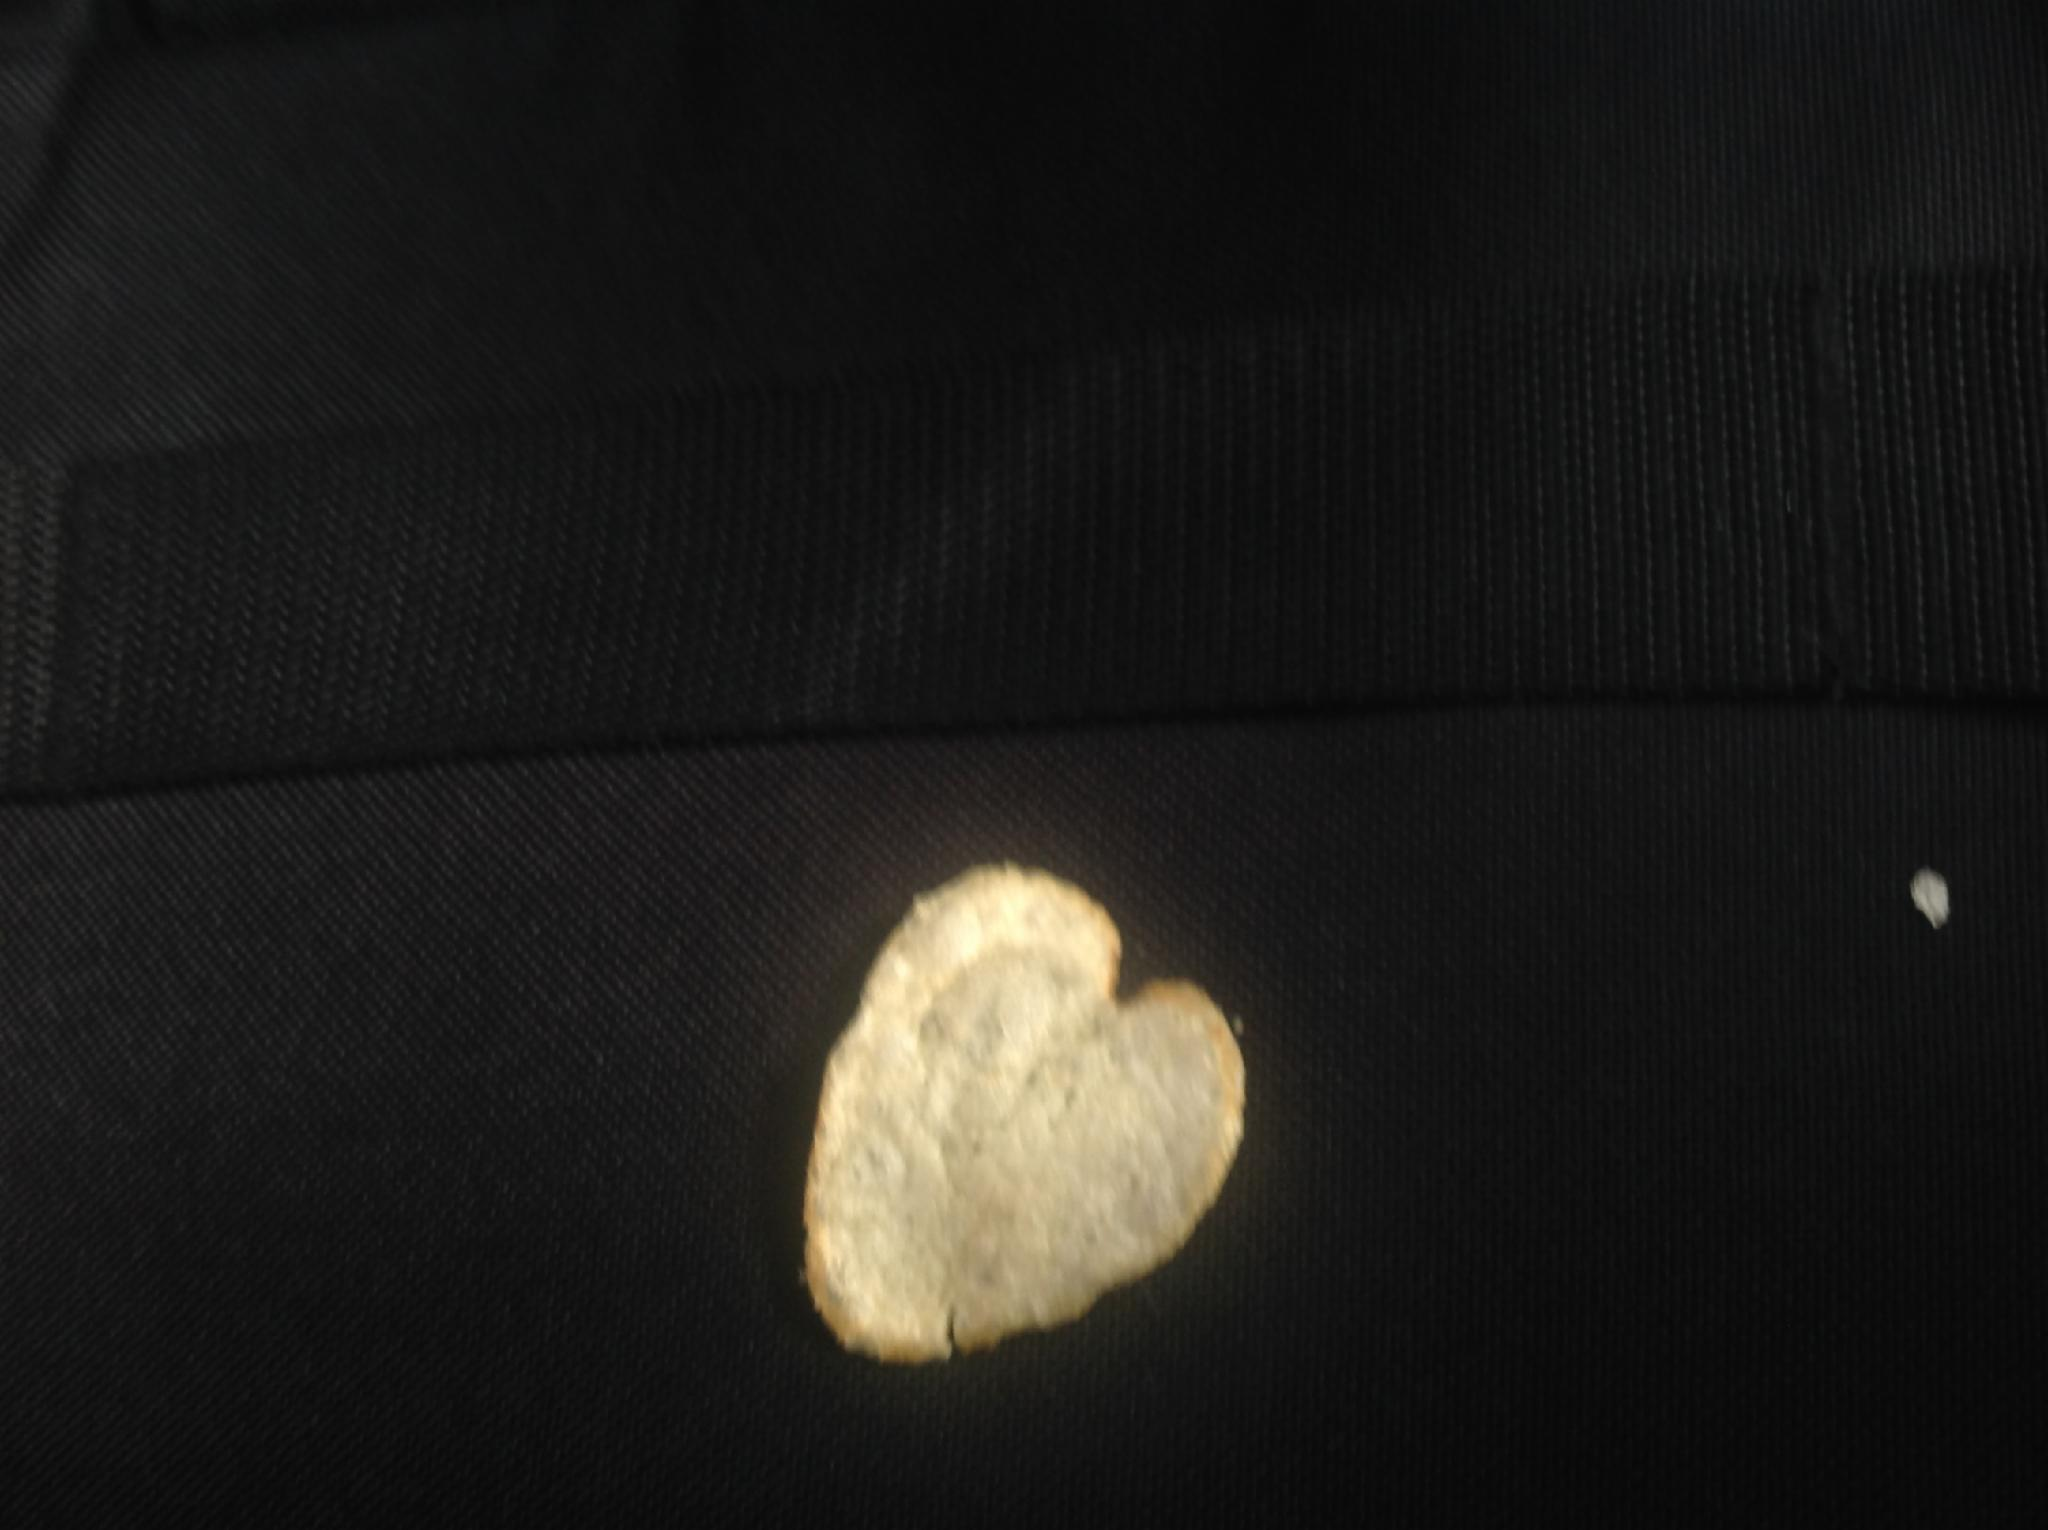 Do you like this heart shaped potato chip